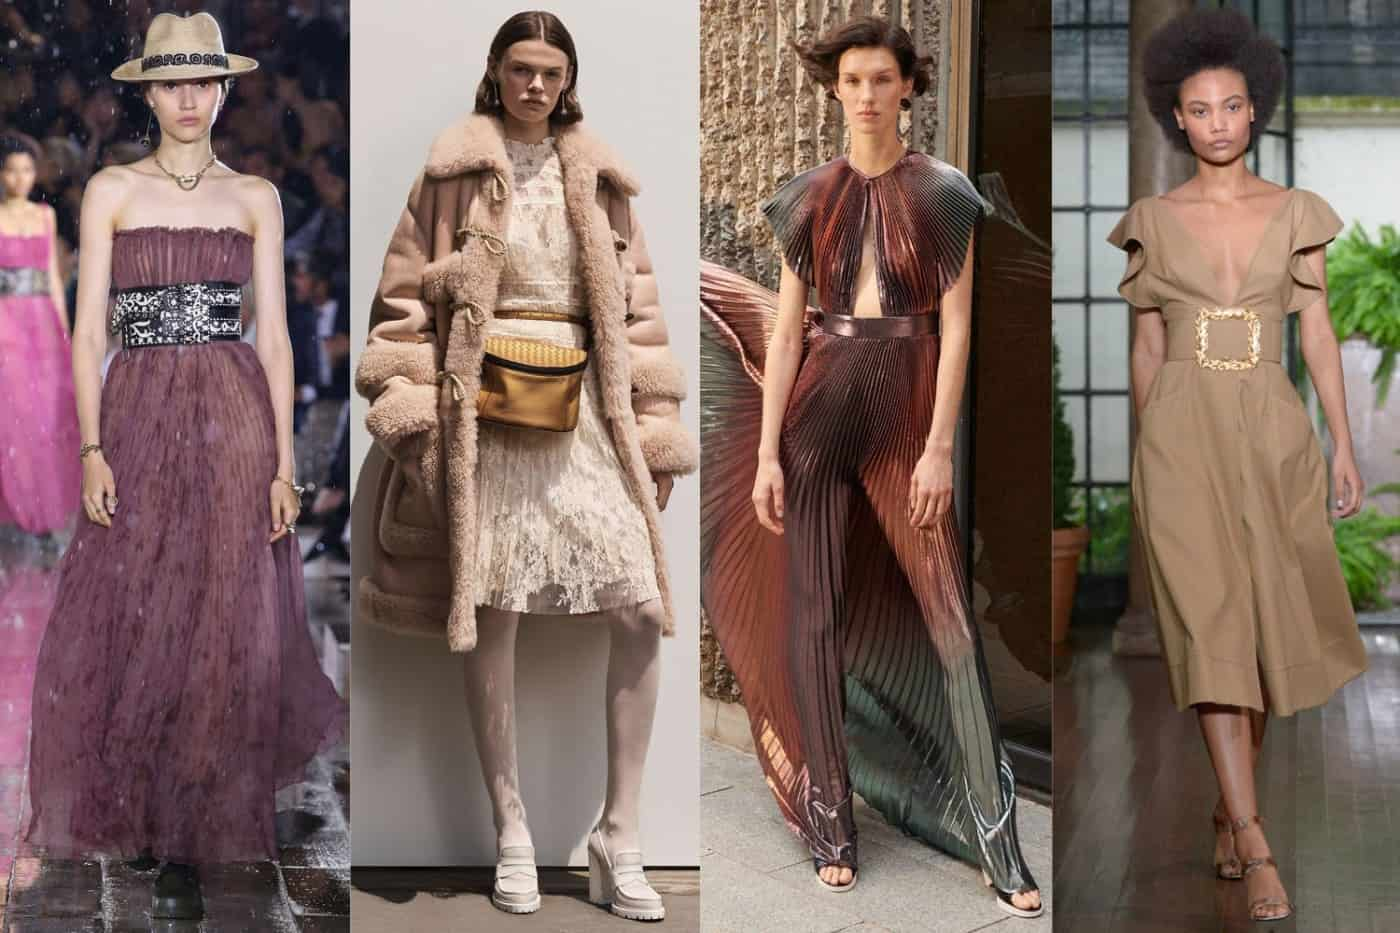 f7a08a8bb2c19 12 Trends Making a Splash for Resort 2019 — Runway Cruise Trends